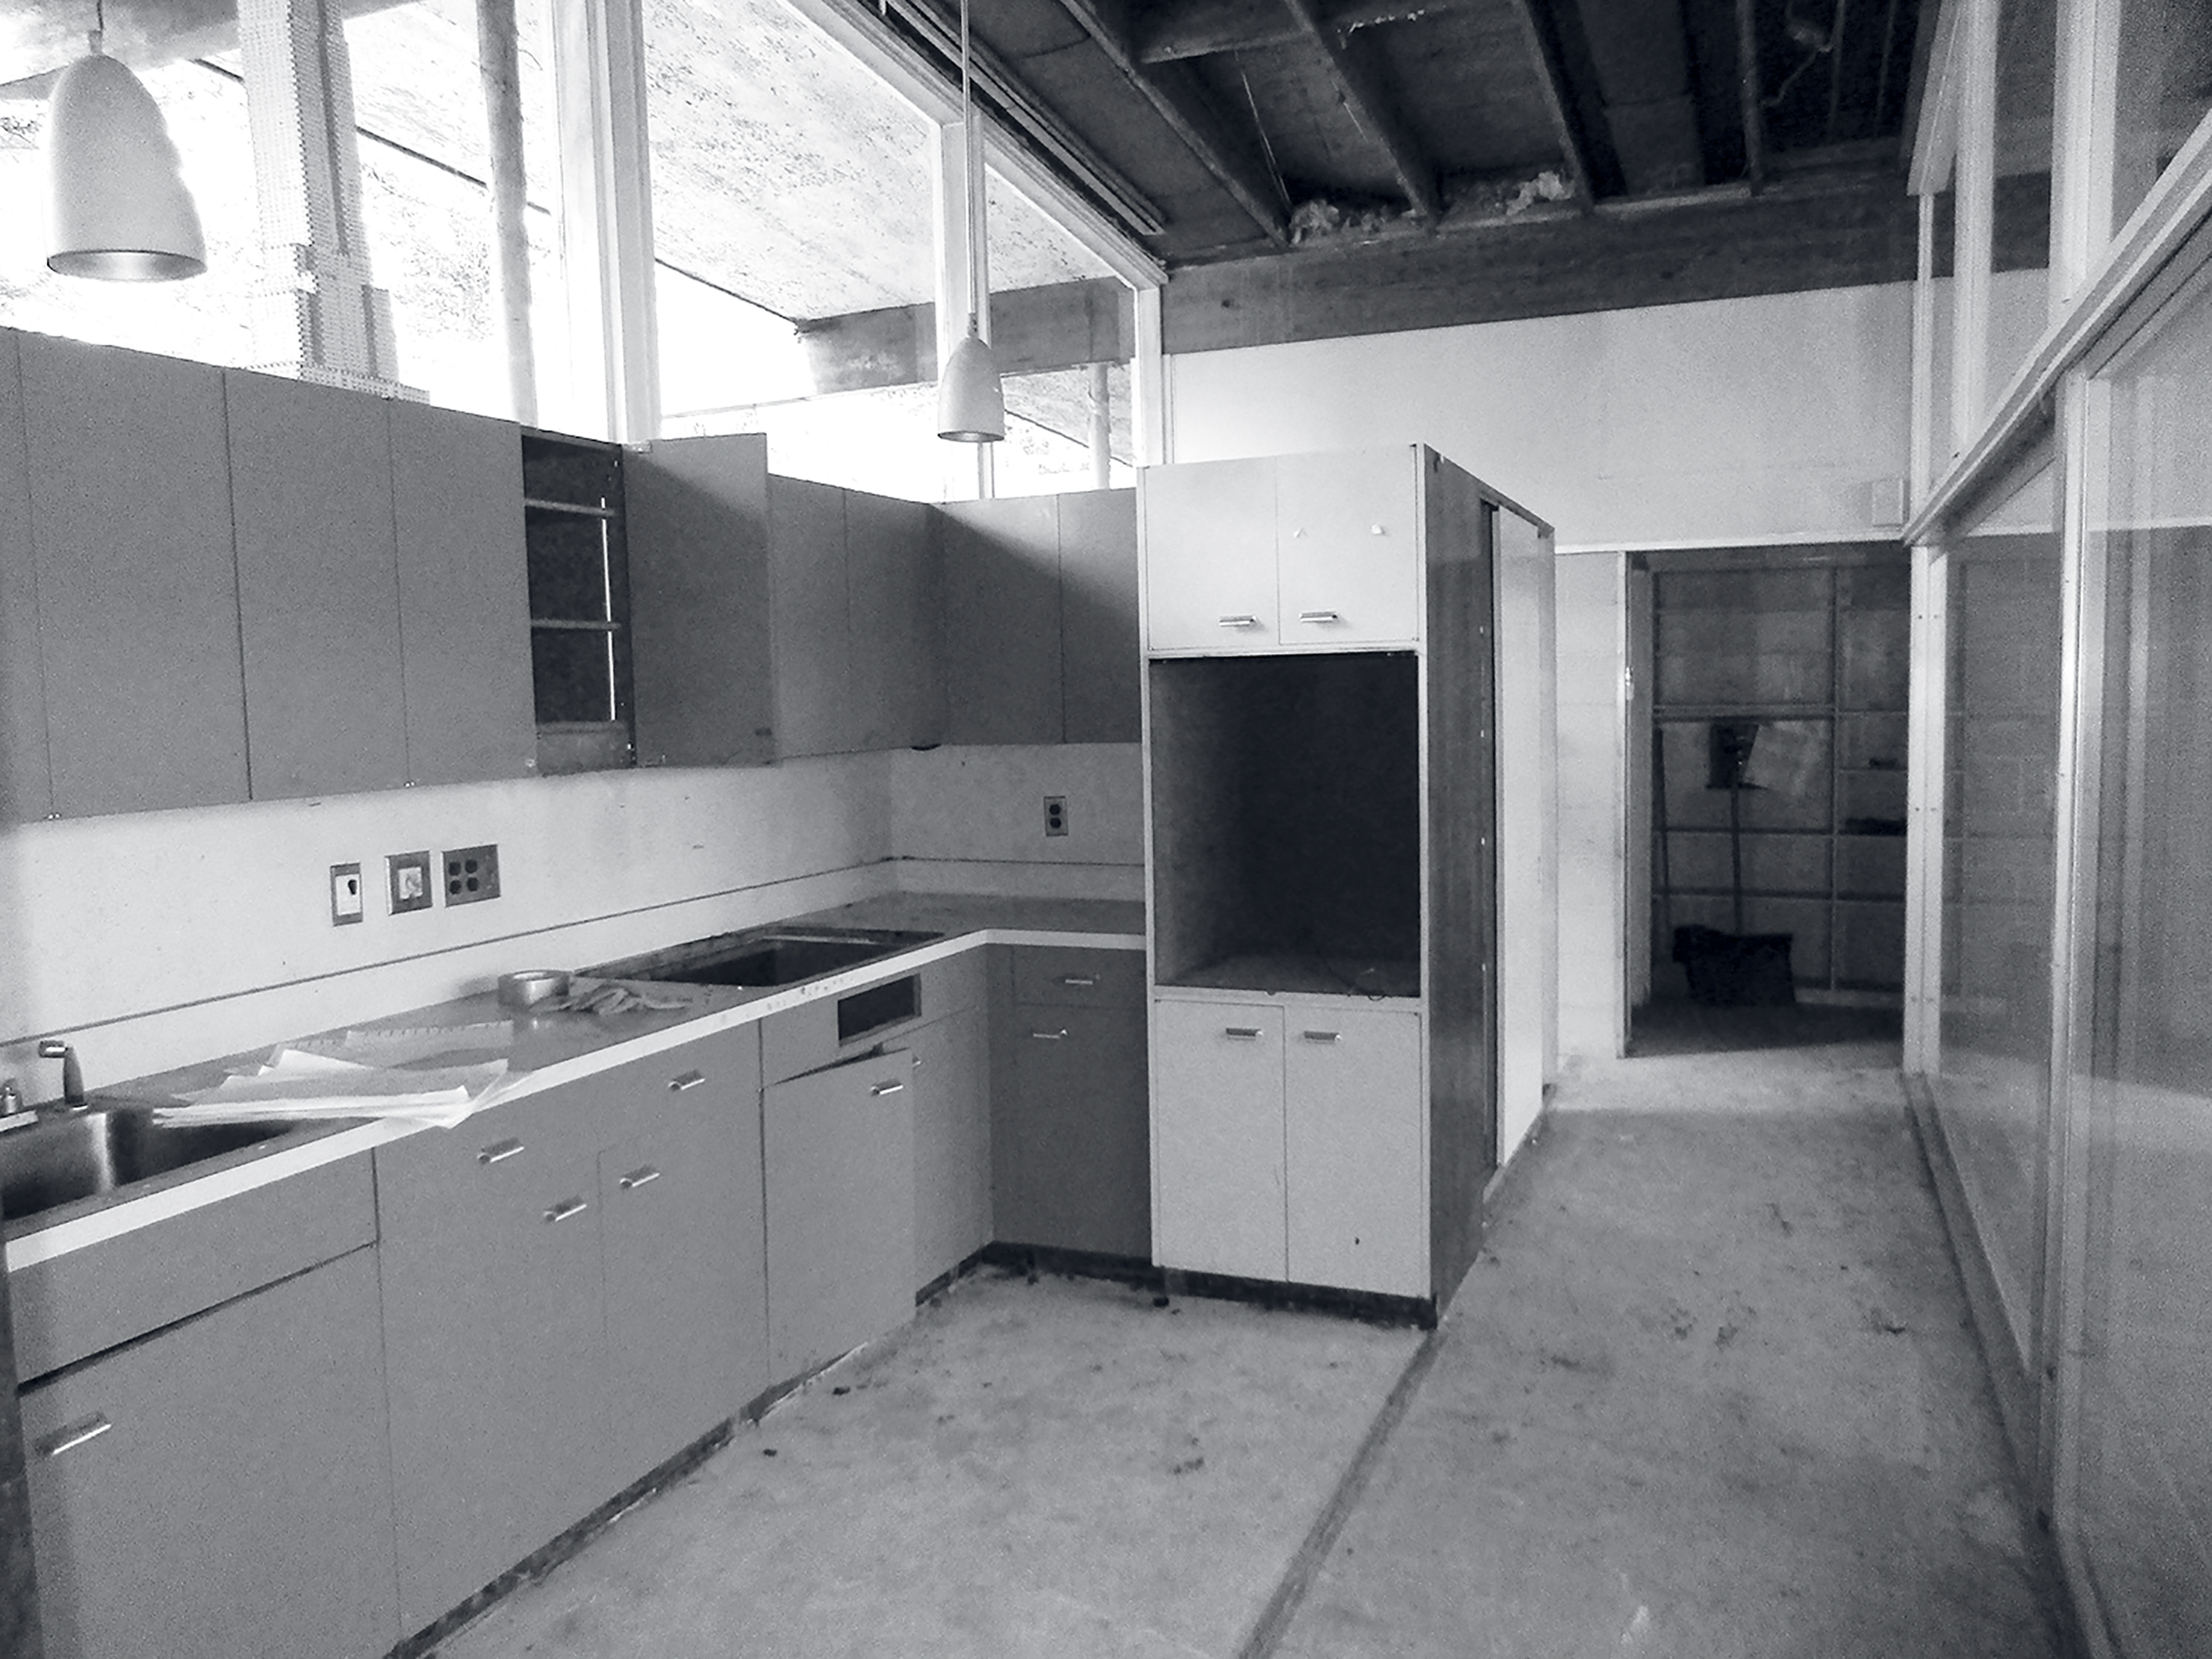 The kitchen before the renovation. Photograph courtesy of Wiedmann Architects.